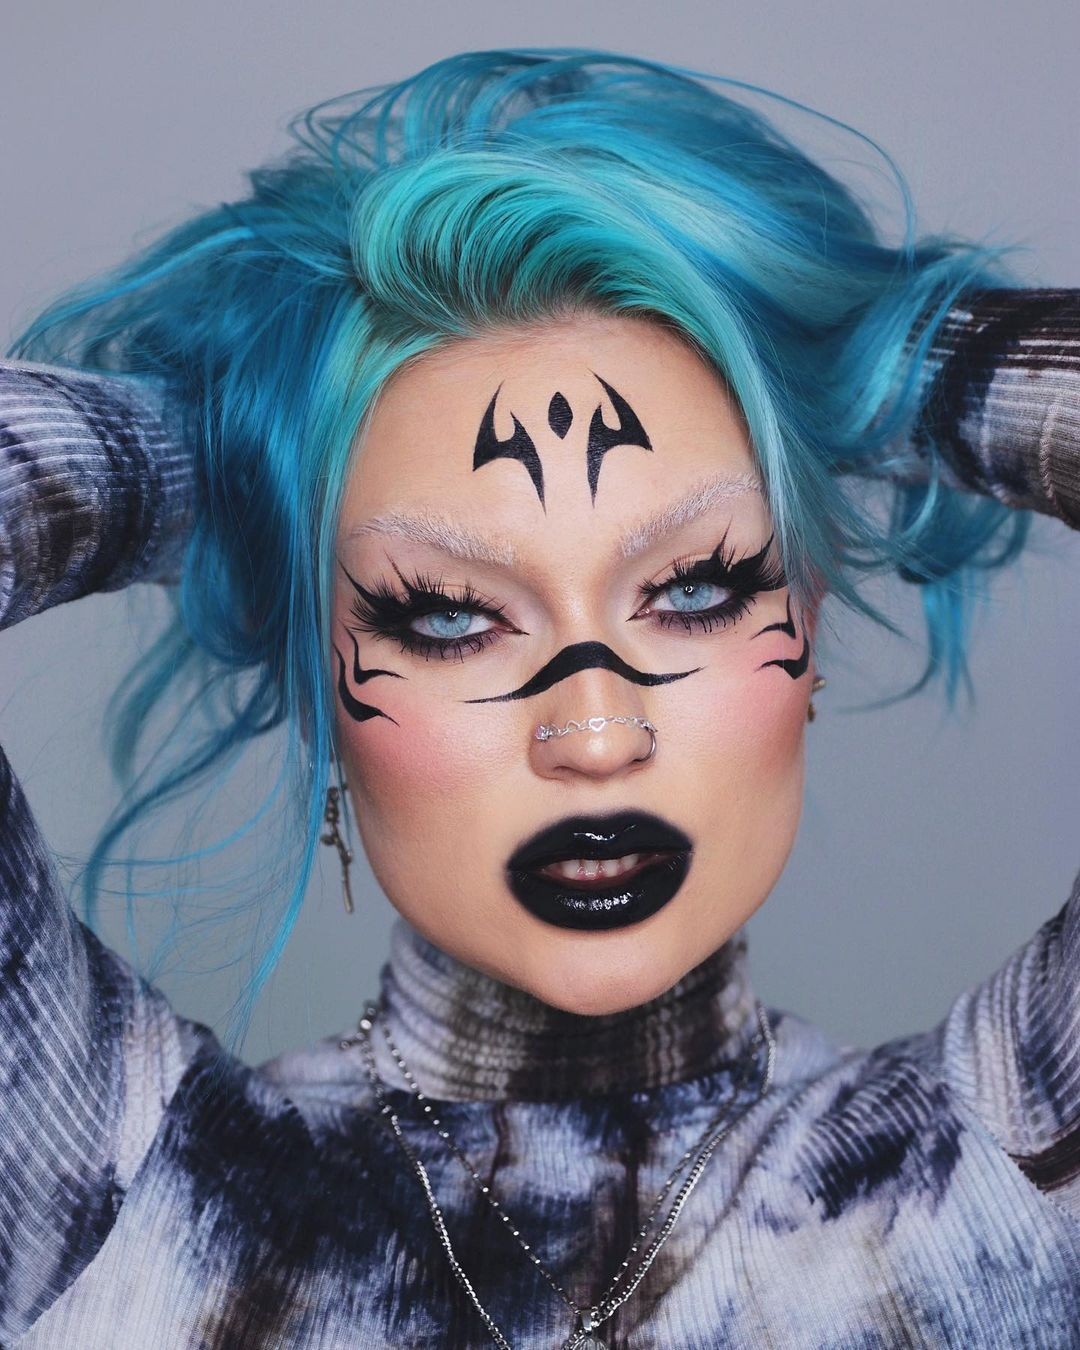 Queen Of Chaos On Instagram Inspired By Sukuna Makeup Jujutsukaisen In 2021 Punk Makeup Edgy Makeup Fantasy Makeup